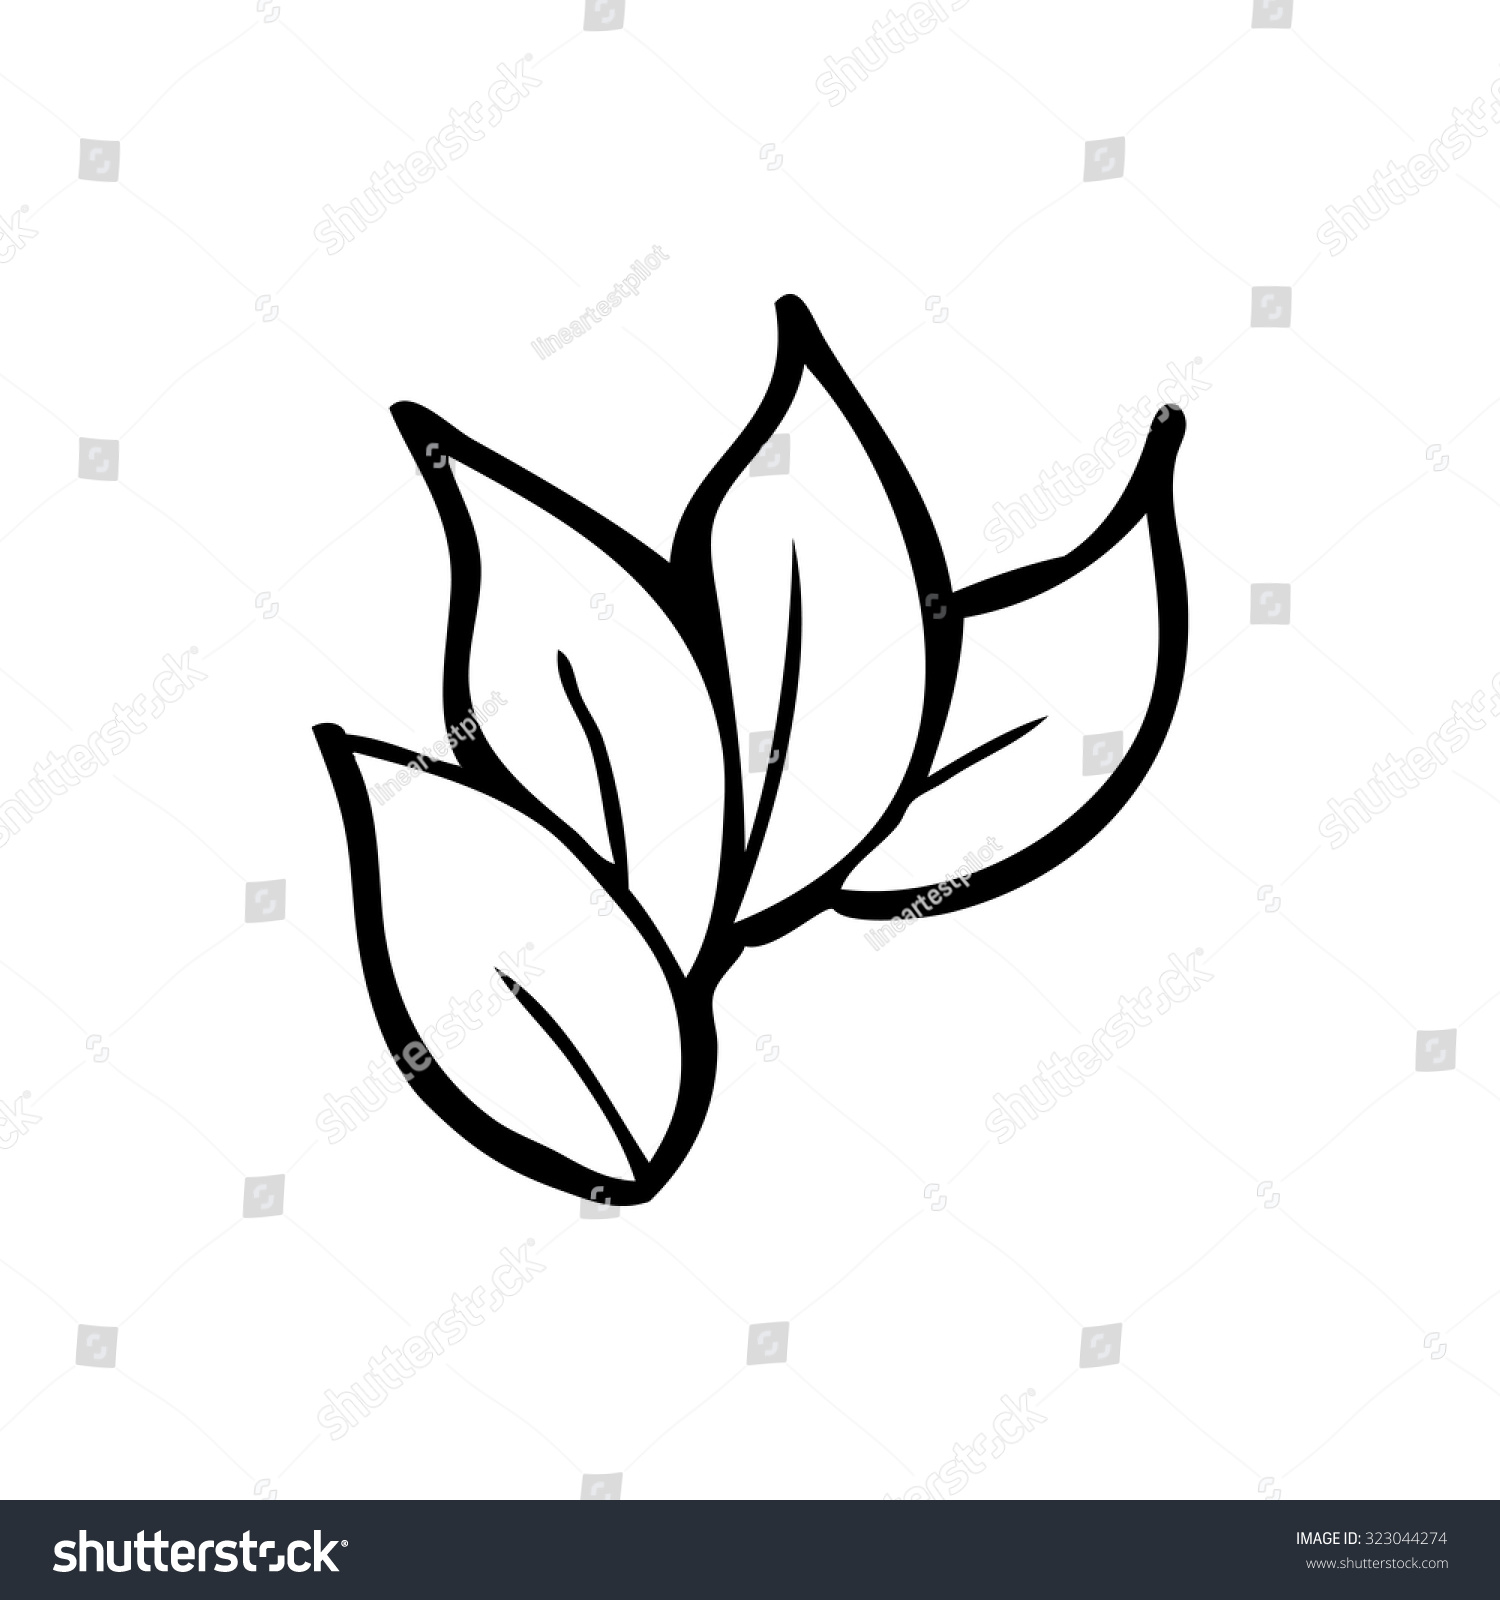 Simple Black White Line Drawing Cartoon Stock Vector ...